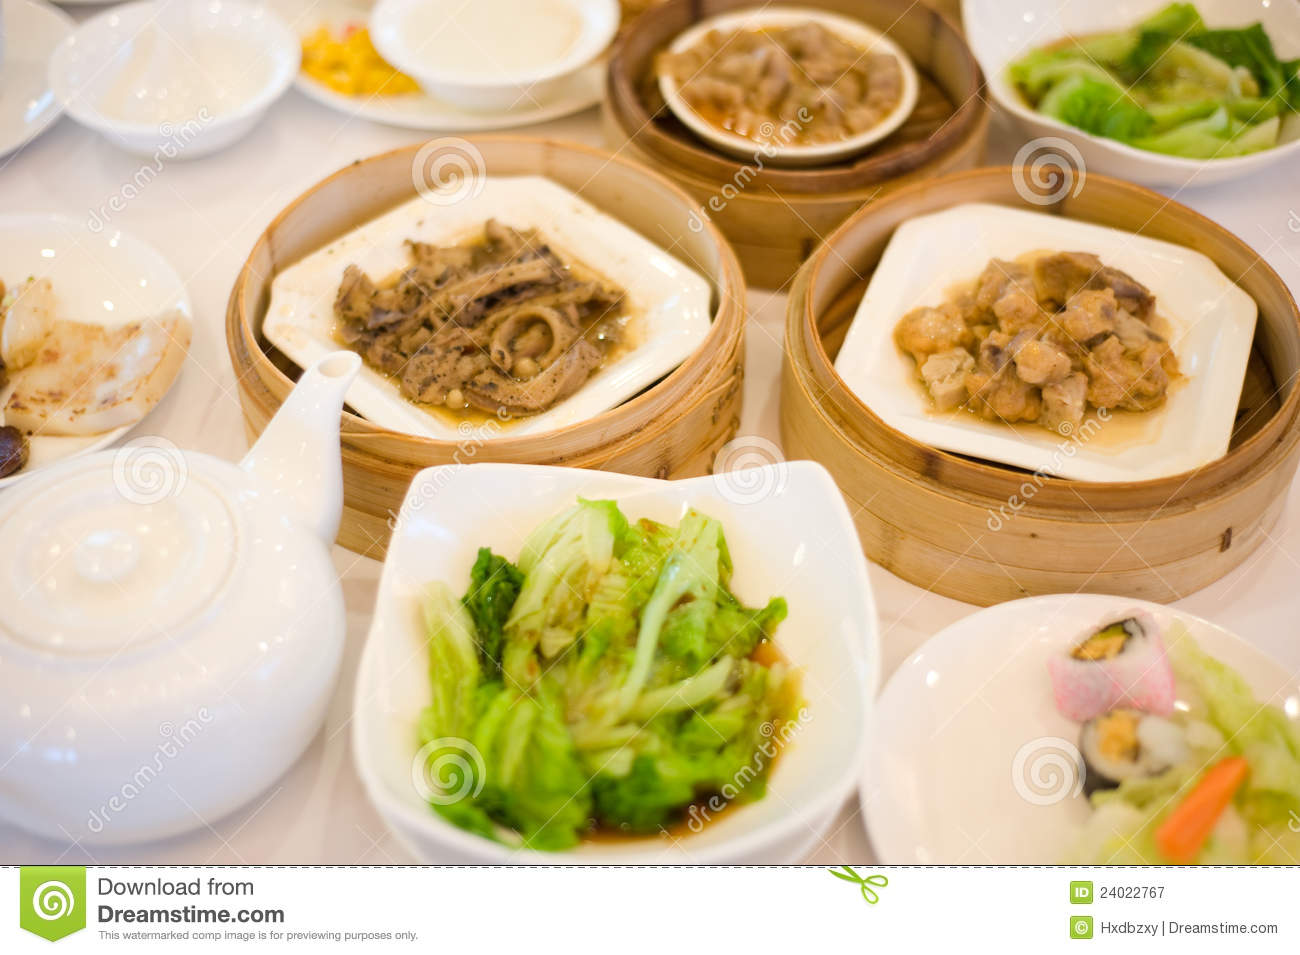 Delicious chinese food royalty free stock photography image 24022767 - Delicious chinese cuisine ...